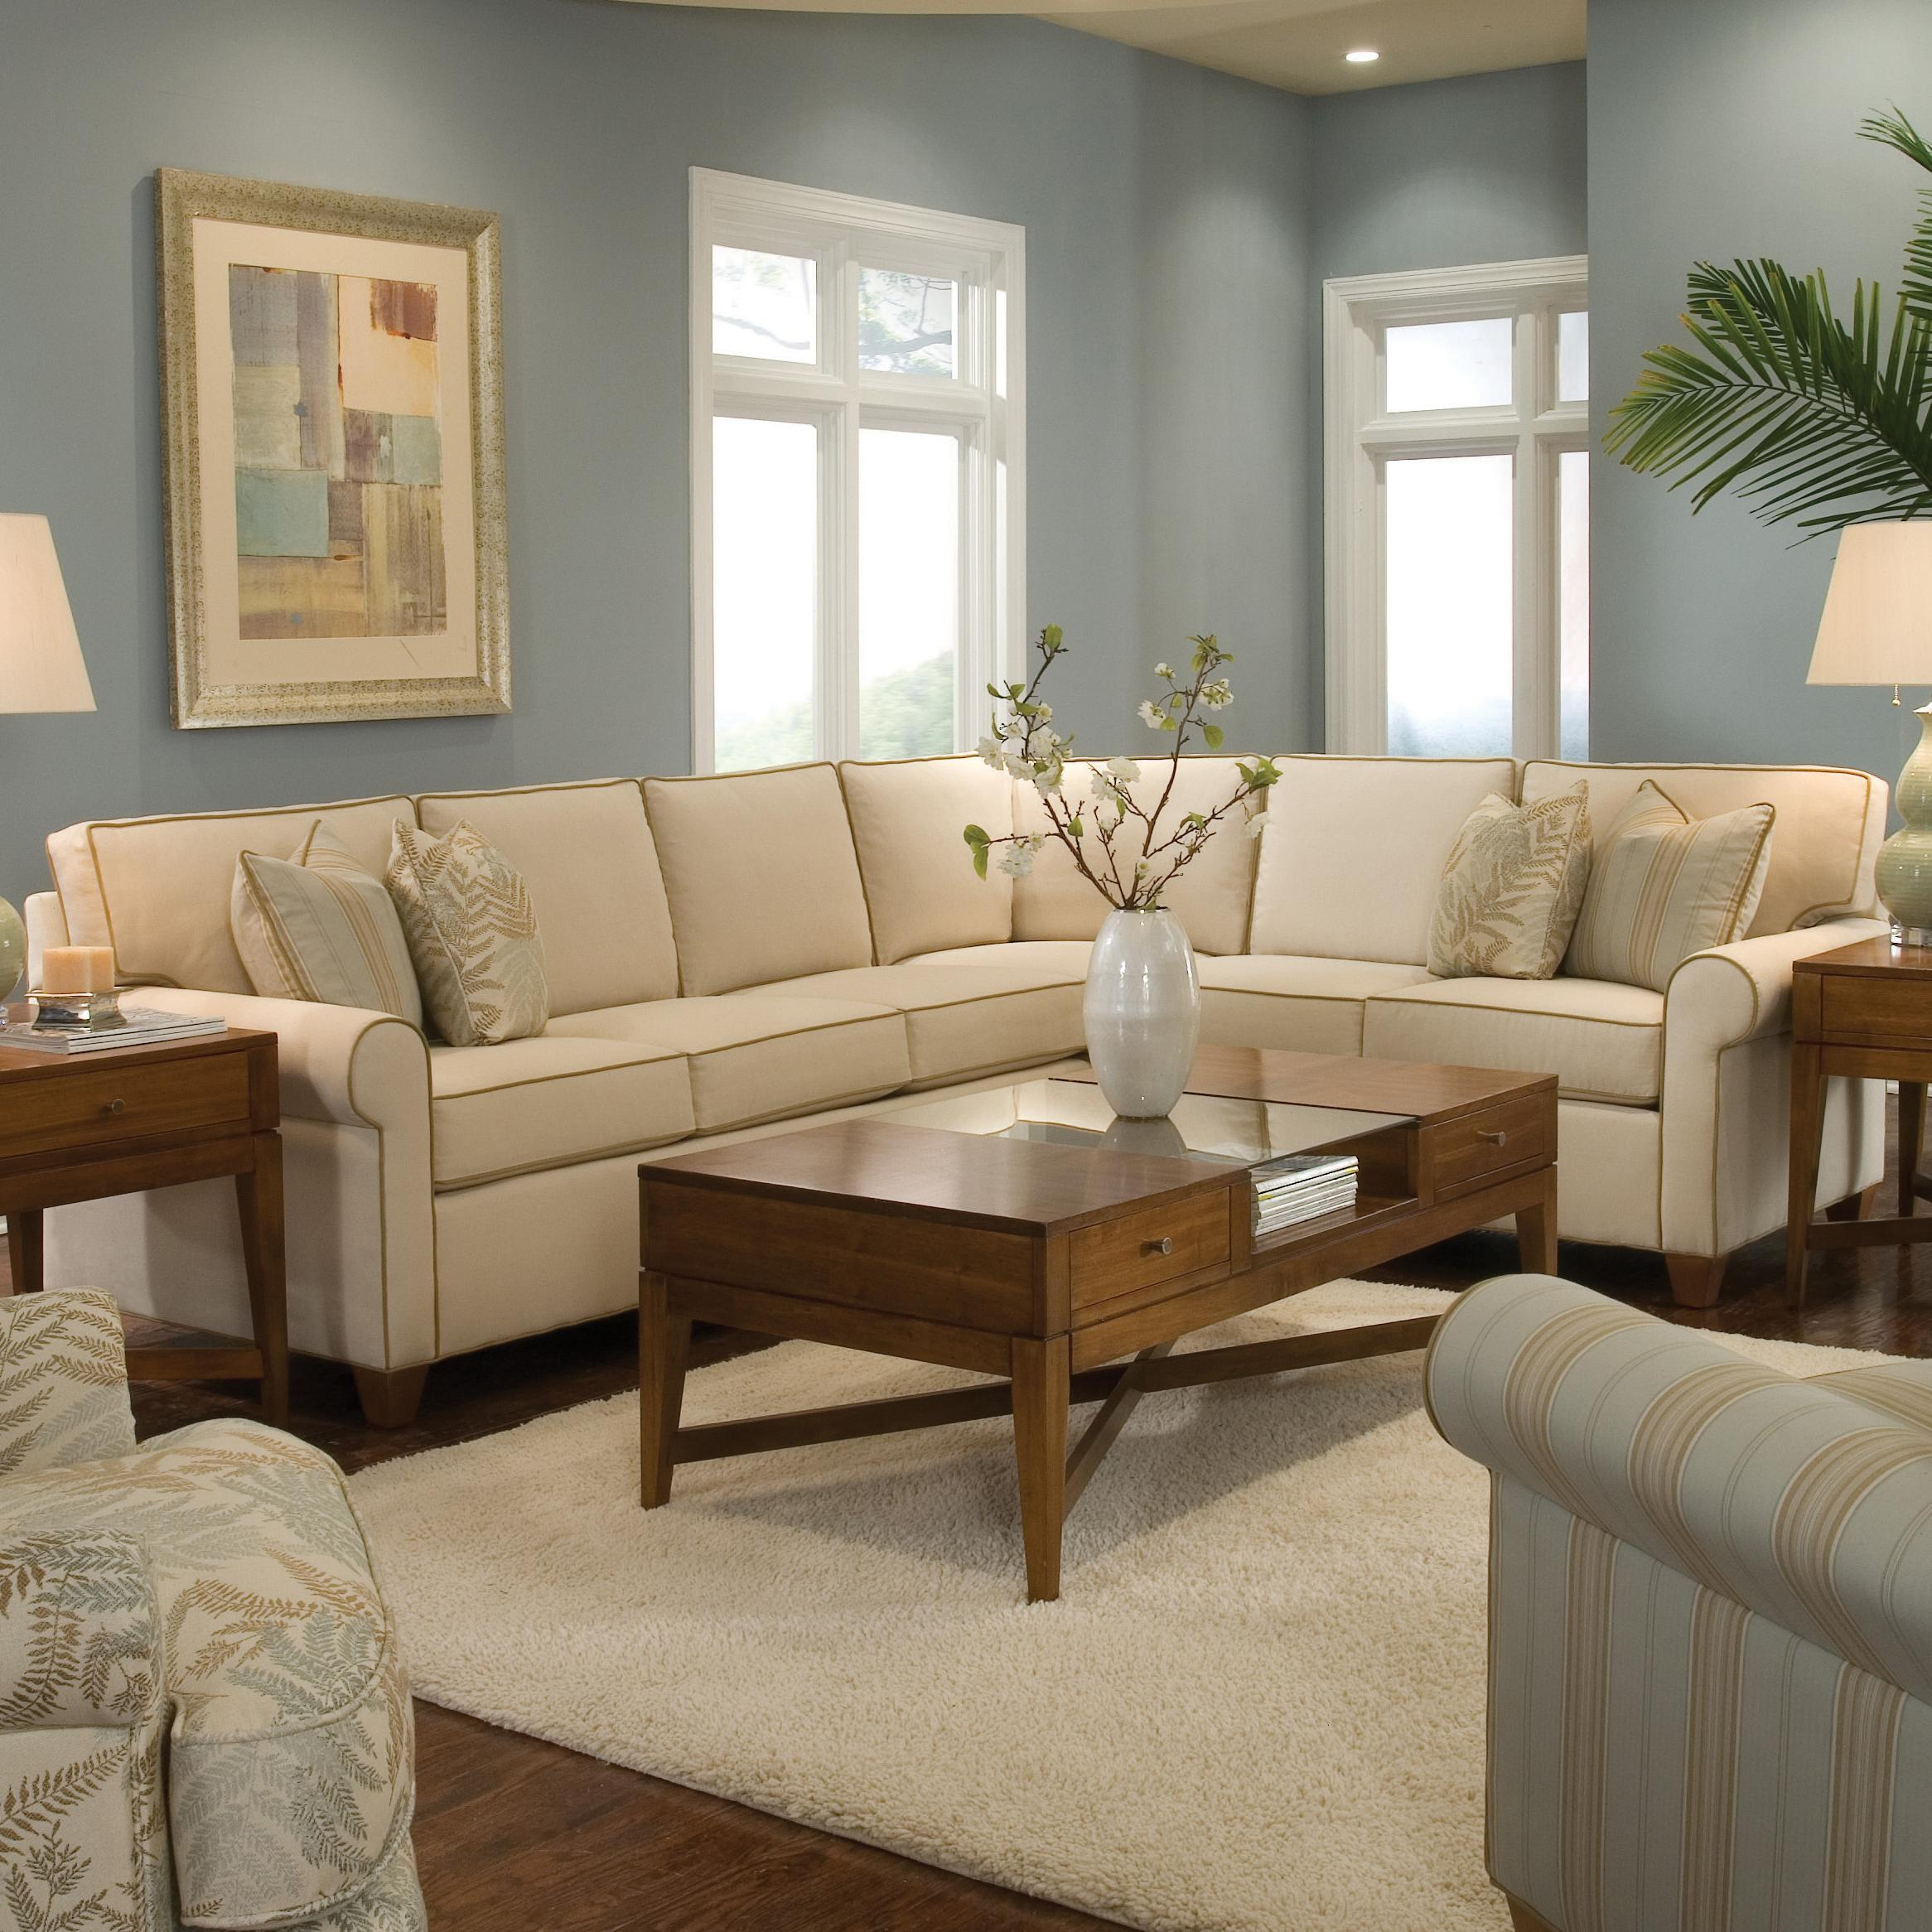 Huntington House Furniture Quality Huntington House 2043 Customizable Transitional Sectional Sofa